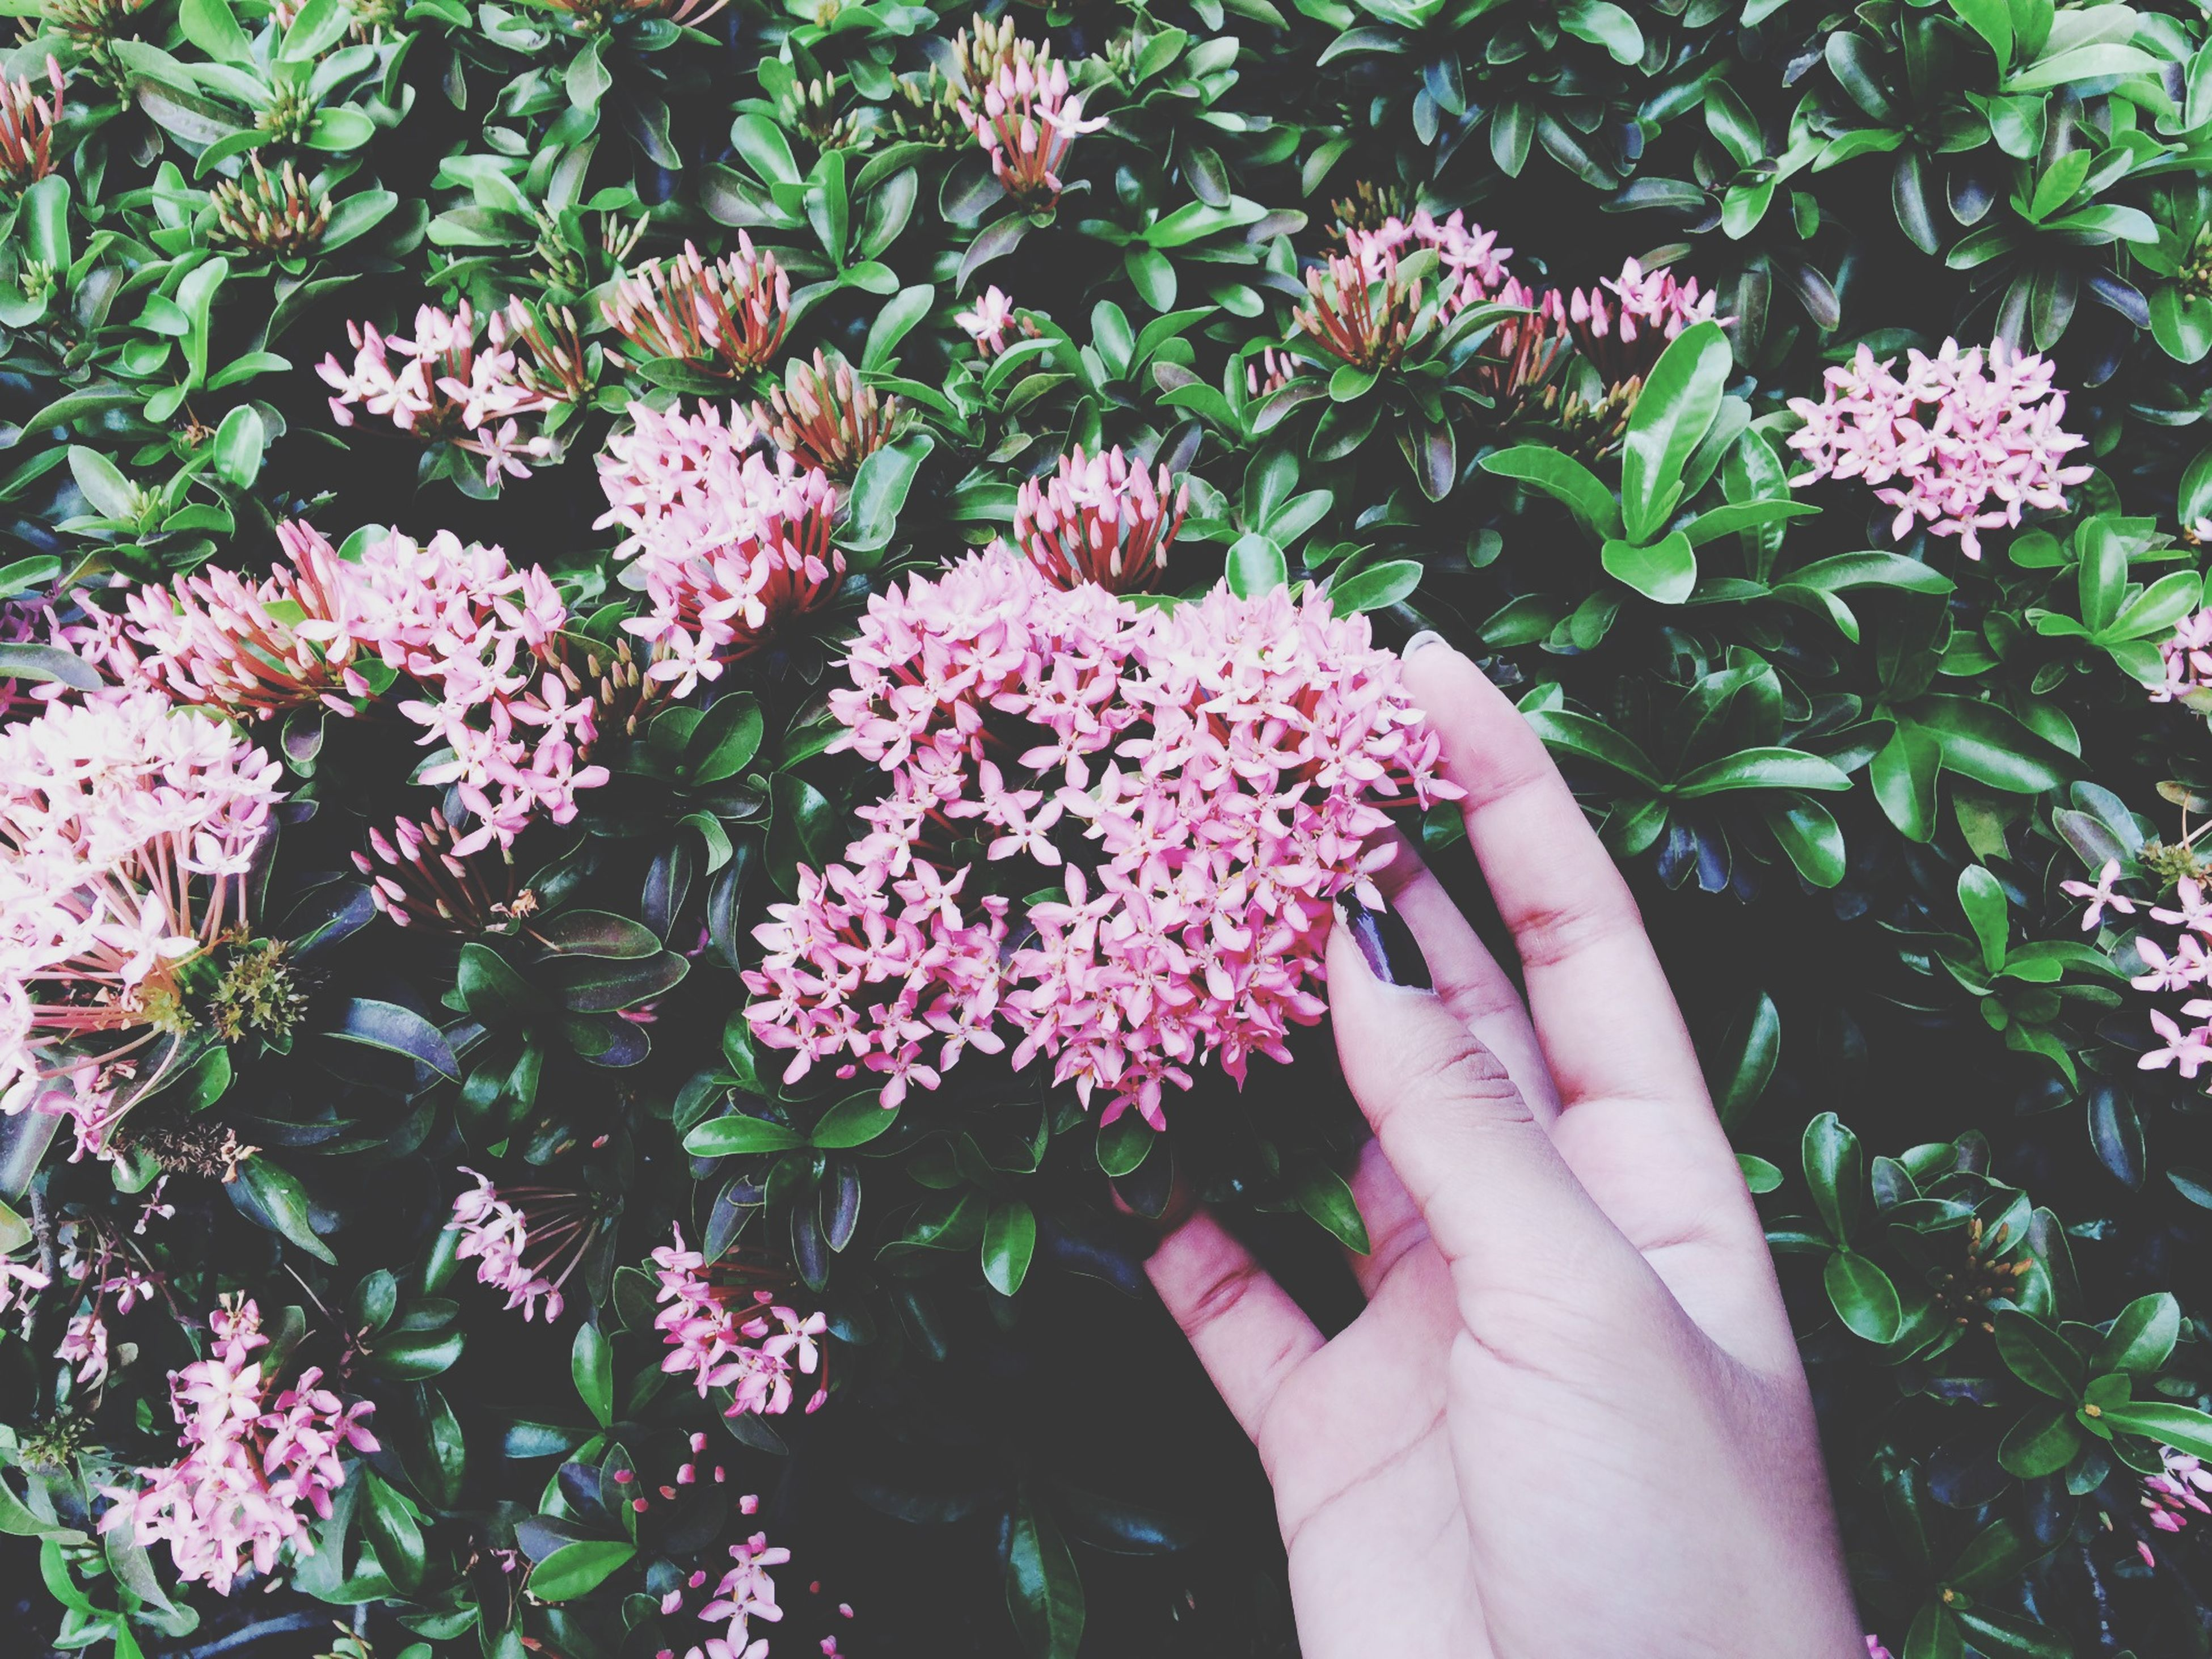 flower, petal, freshness, fragility, growth, flower head, person, pink color, plant, beauty in nature, nature, part of, blooming, high angle view, leaf, close-up, in bloom